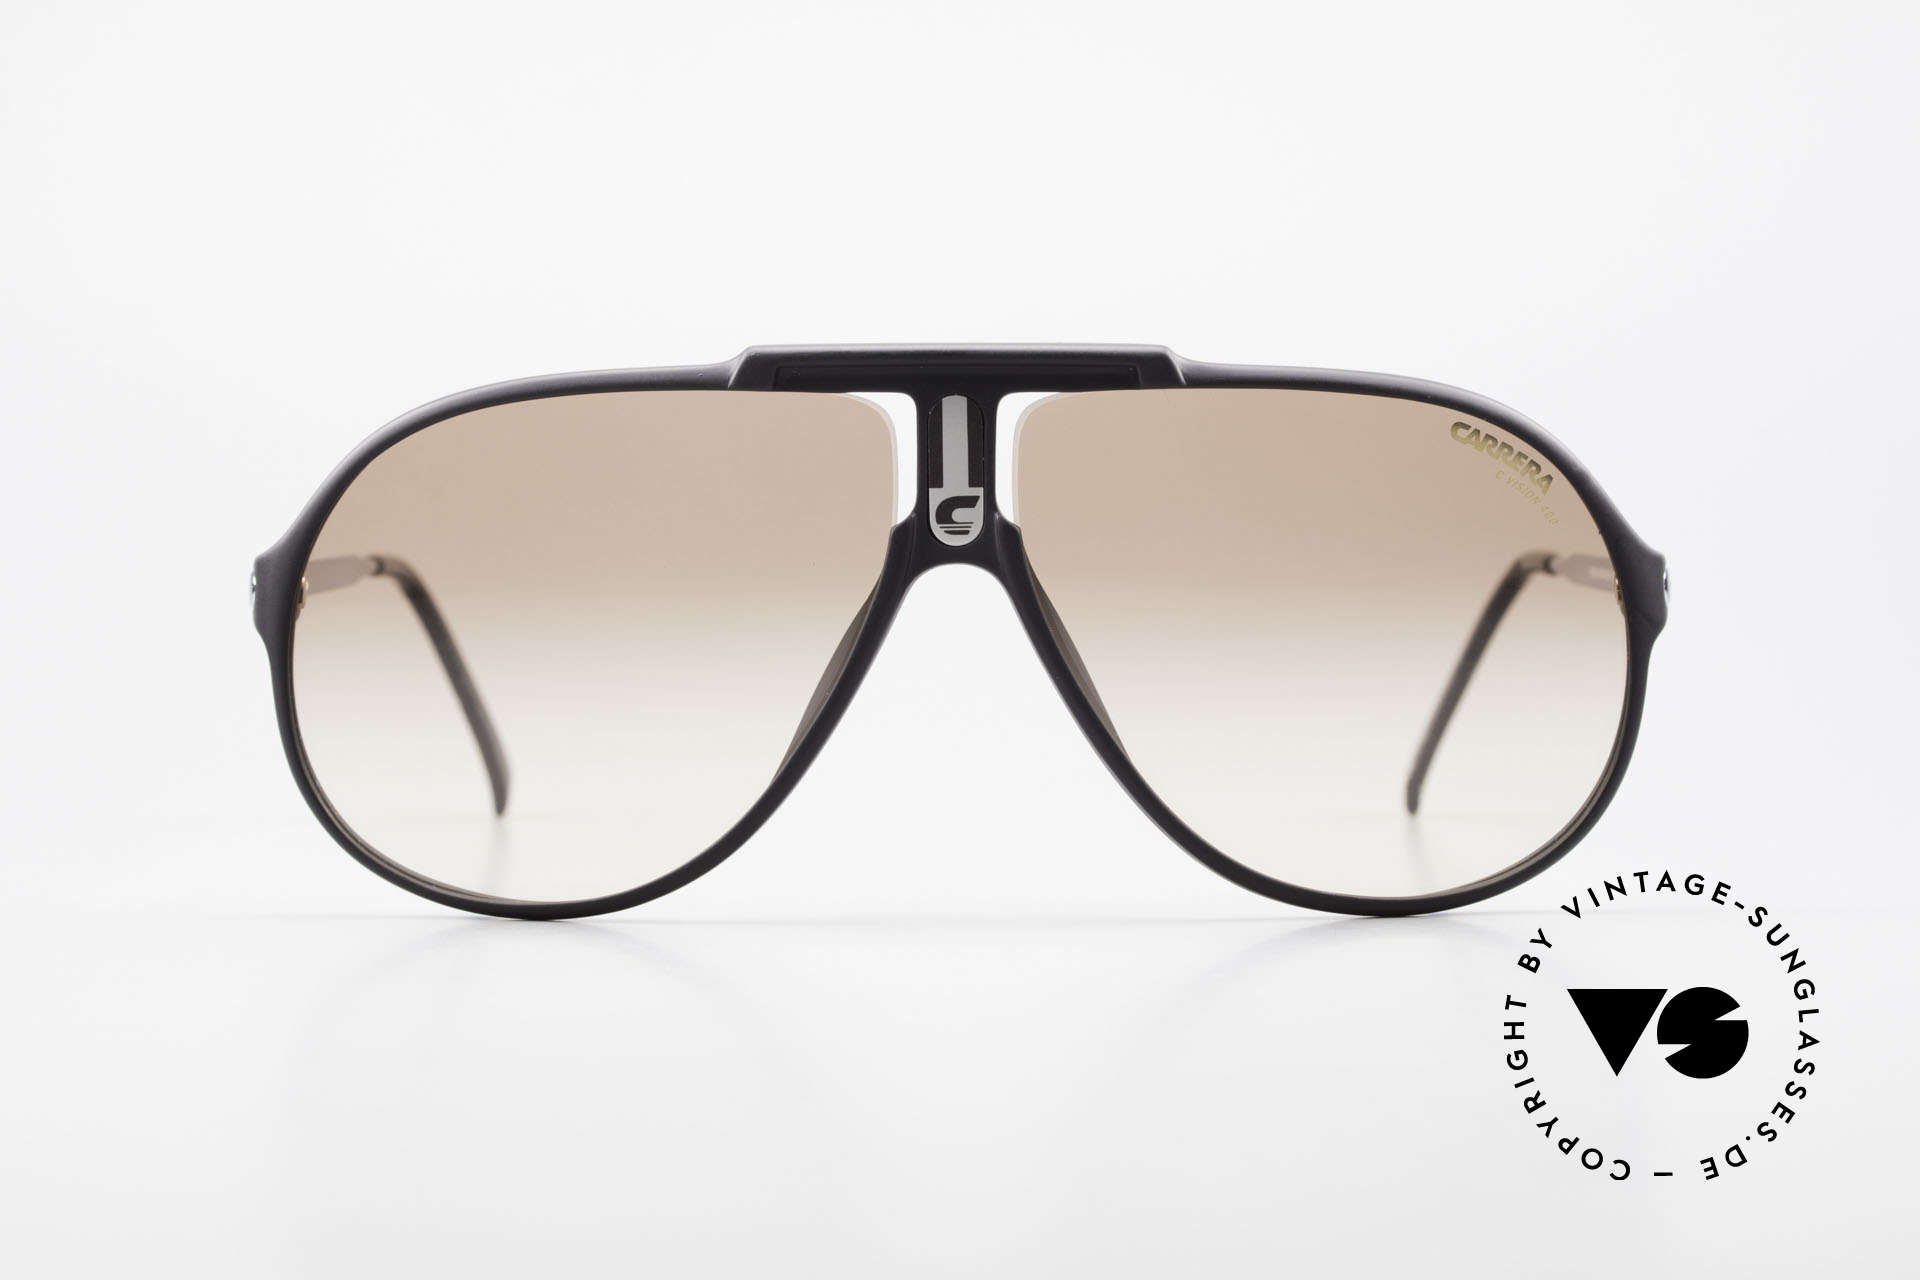 Carrera 5590 Sporty 80's Aviator Sunglasses, frame made of durable and long-living OPTYL material, Made for Men